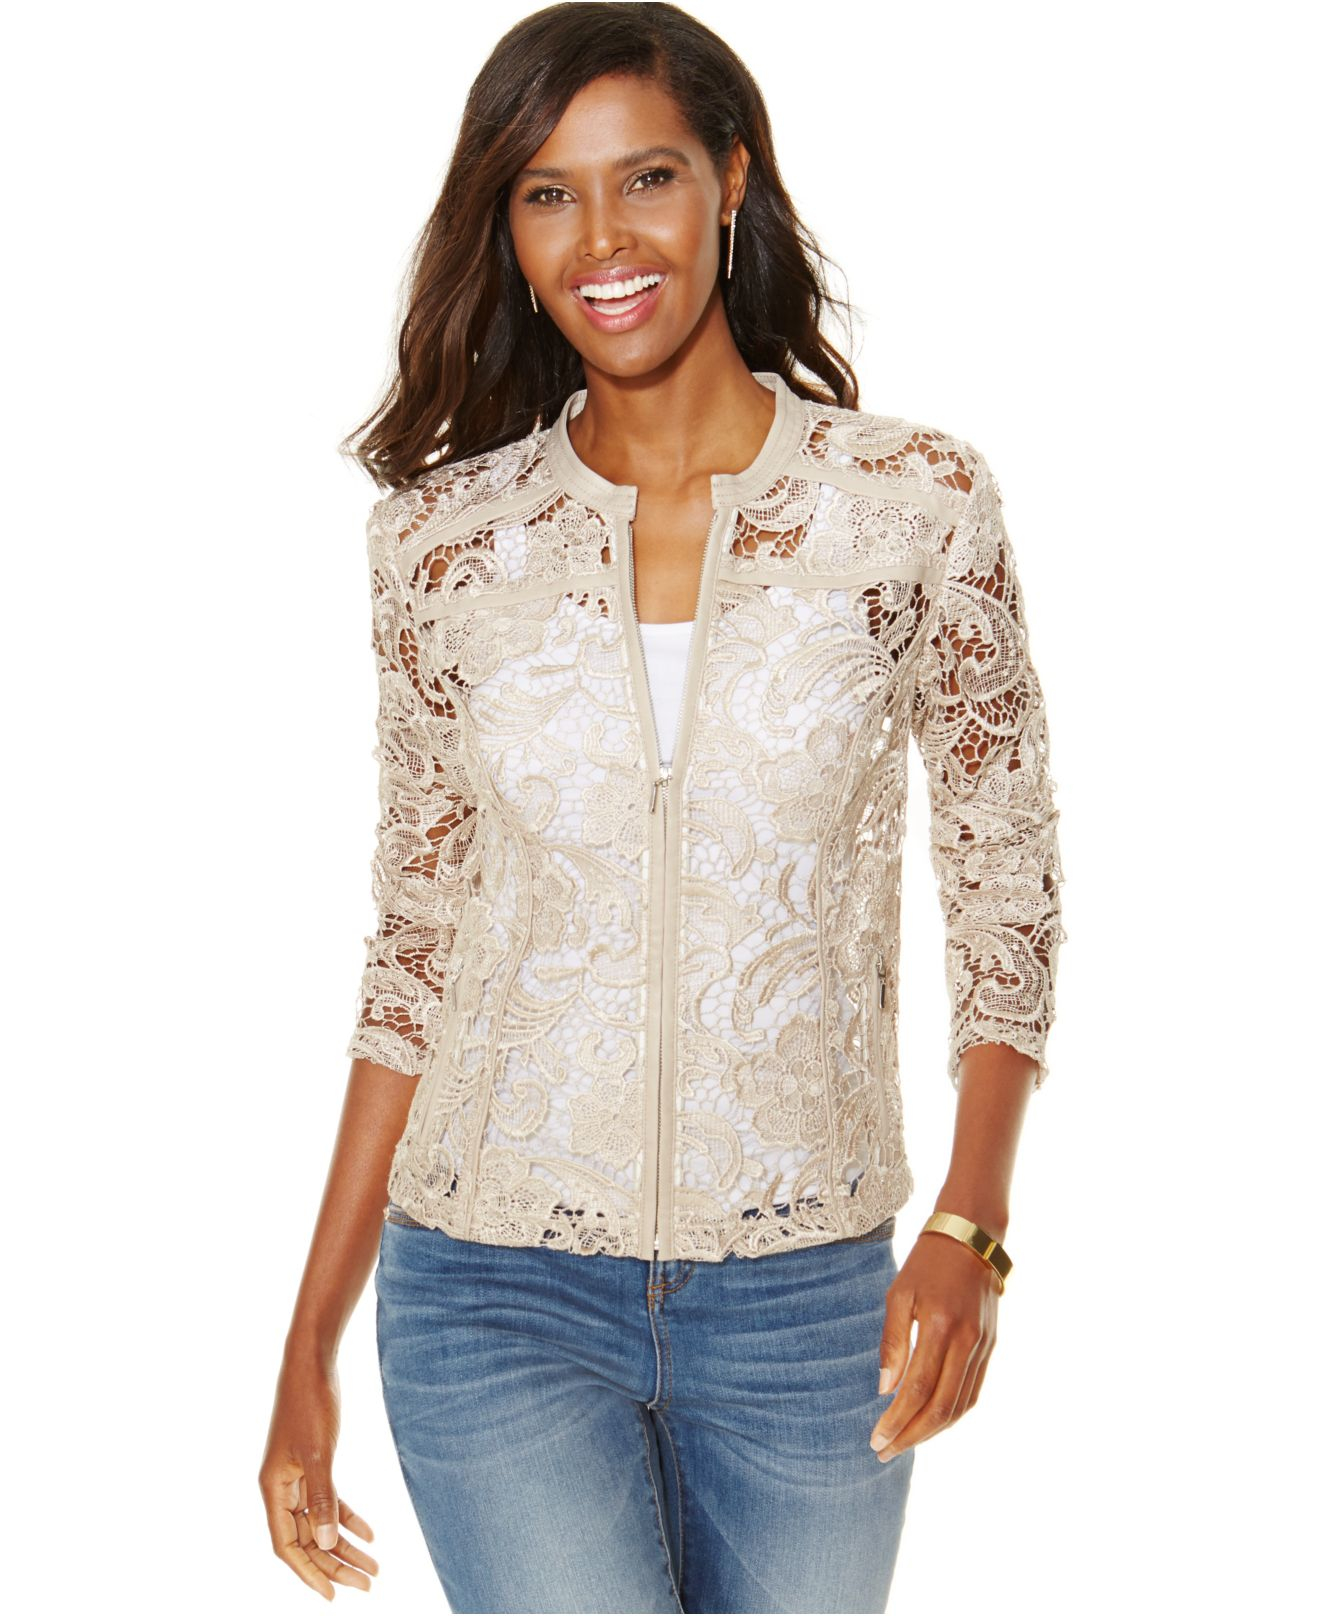 Wedding Lace Jacket images of lace jacket fashion trends and models inc international concepts petite faux leather trim in